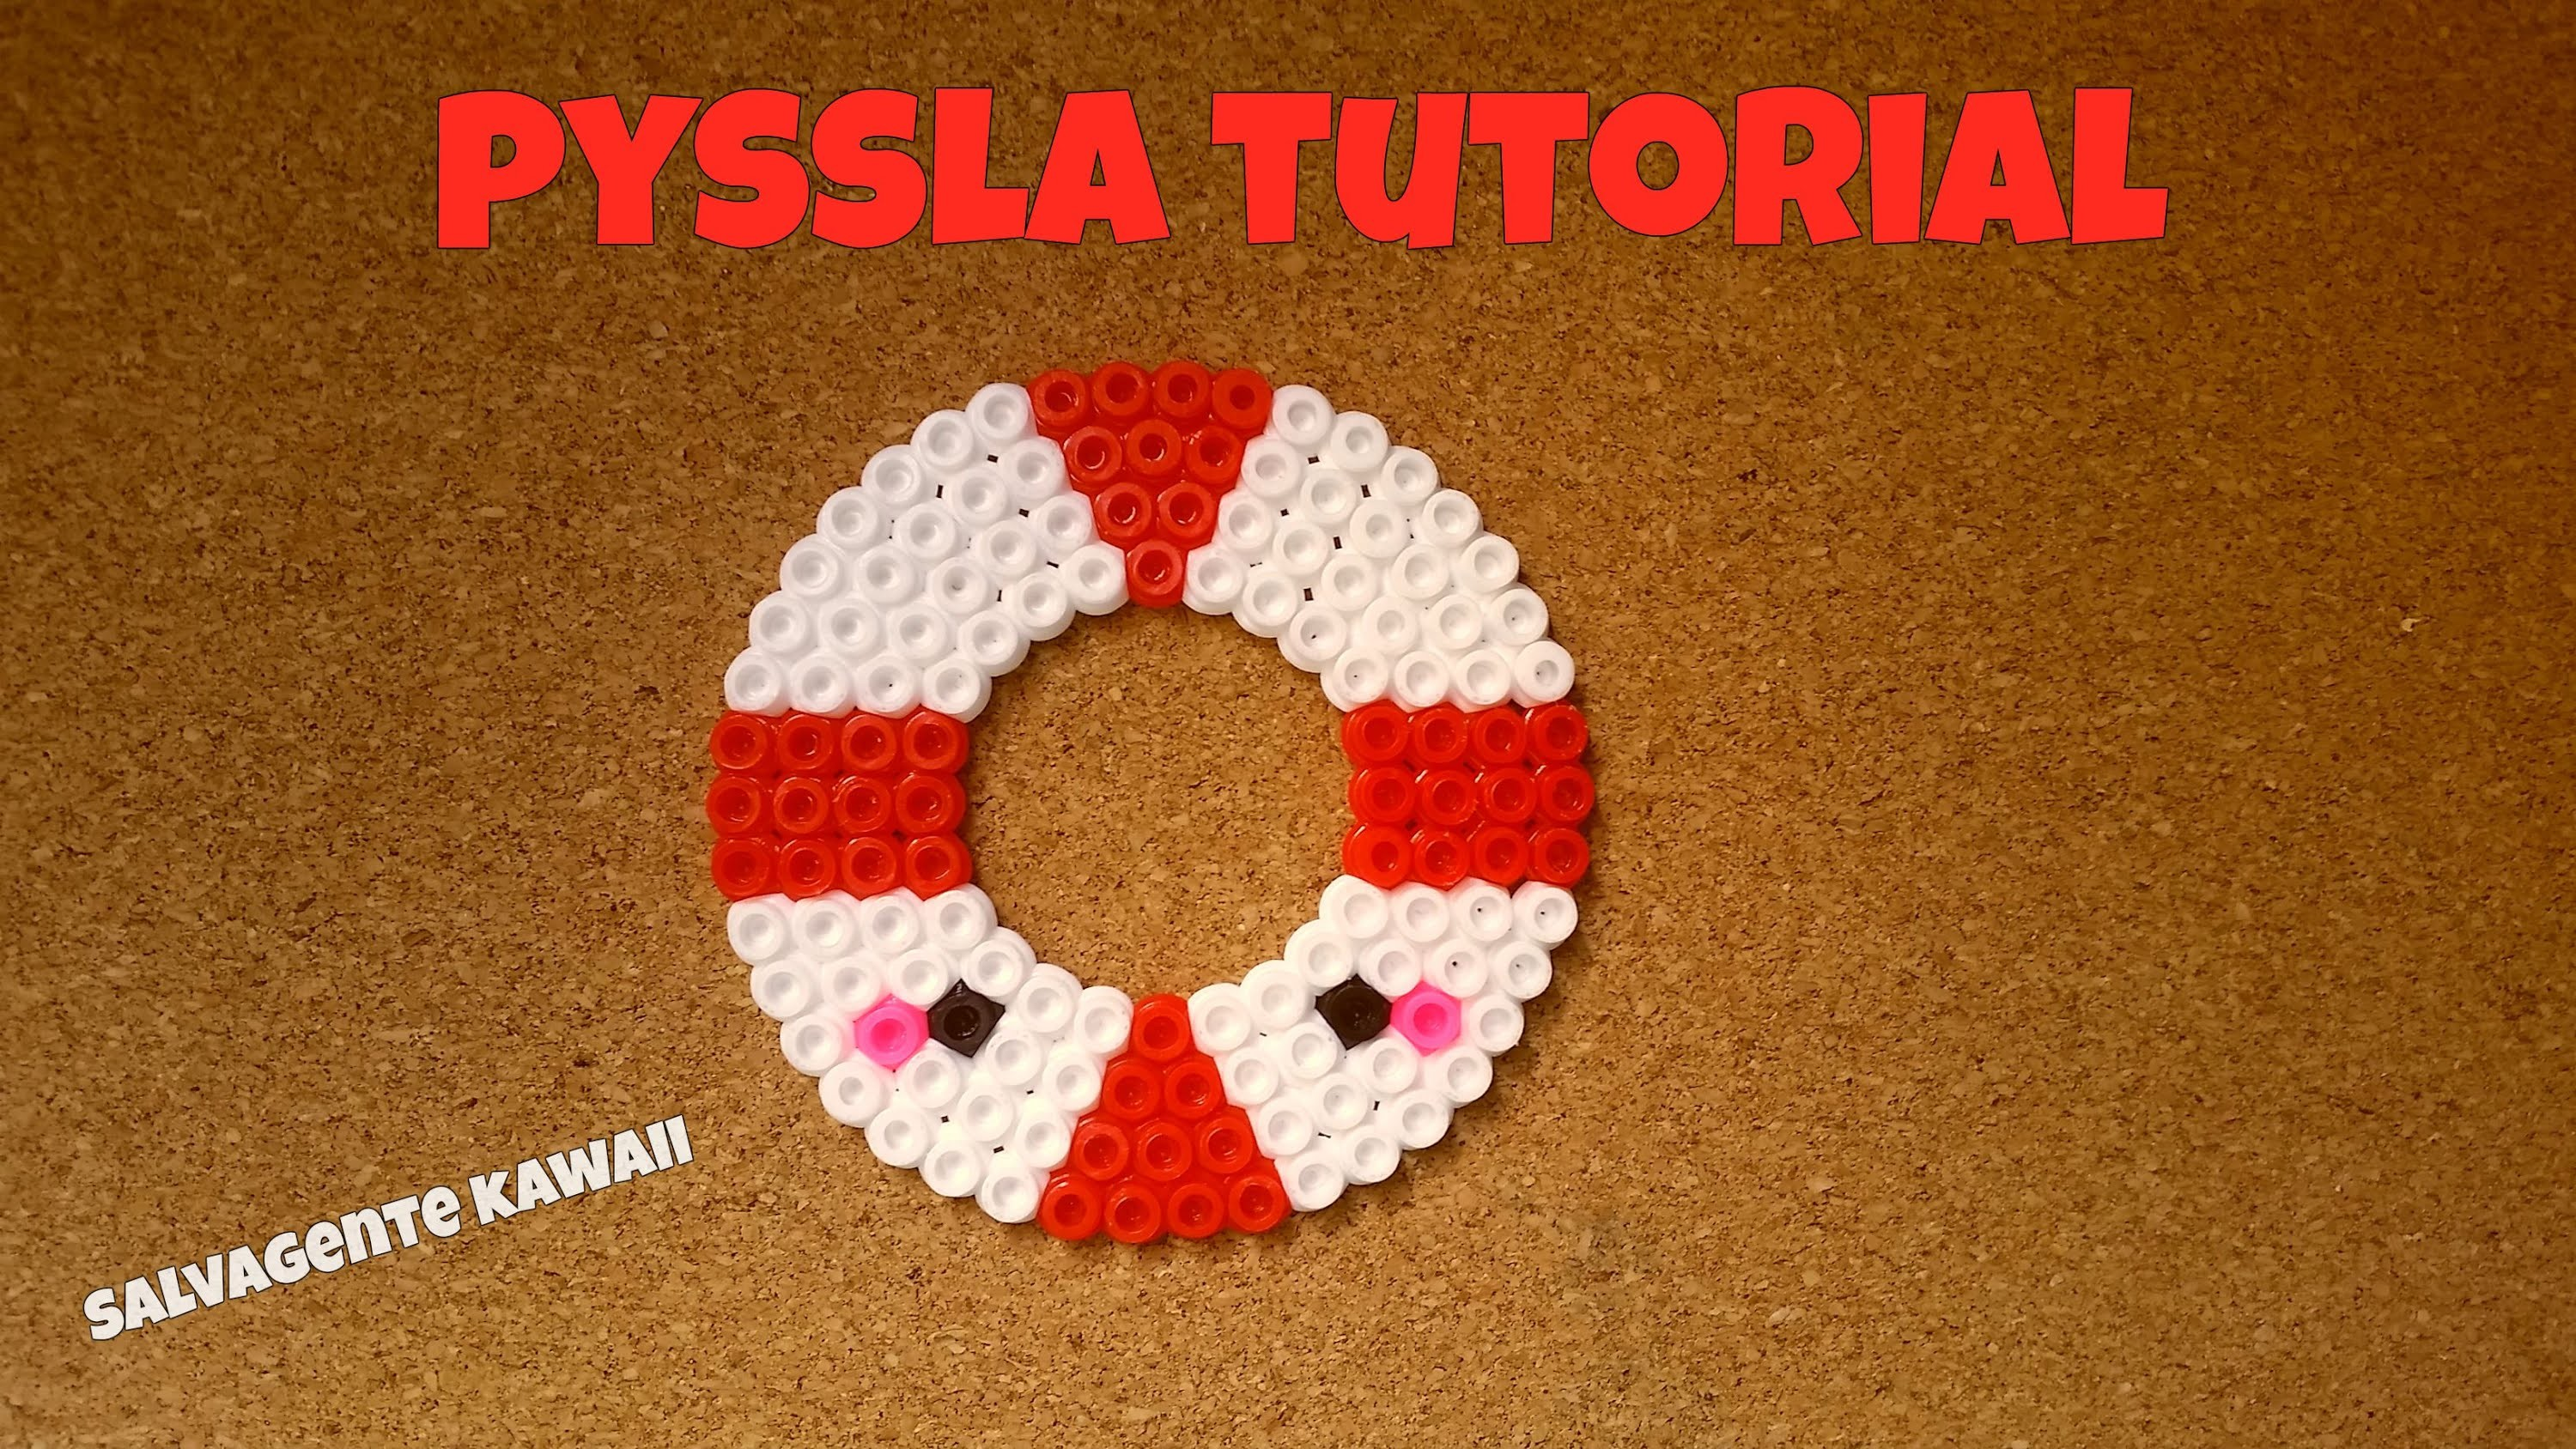 Speed pyssla tutorial salvagente kawaii | FANTYSTEFY